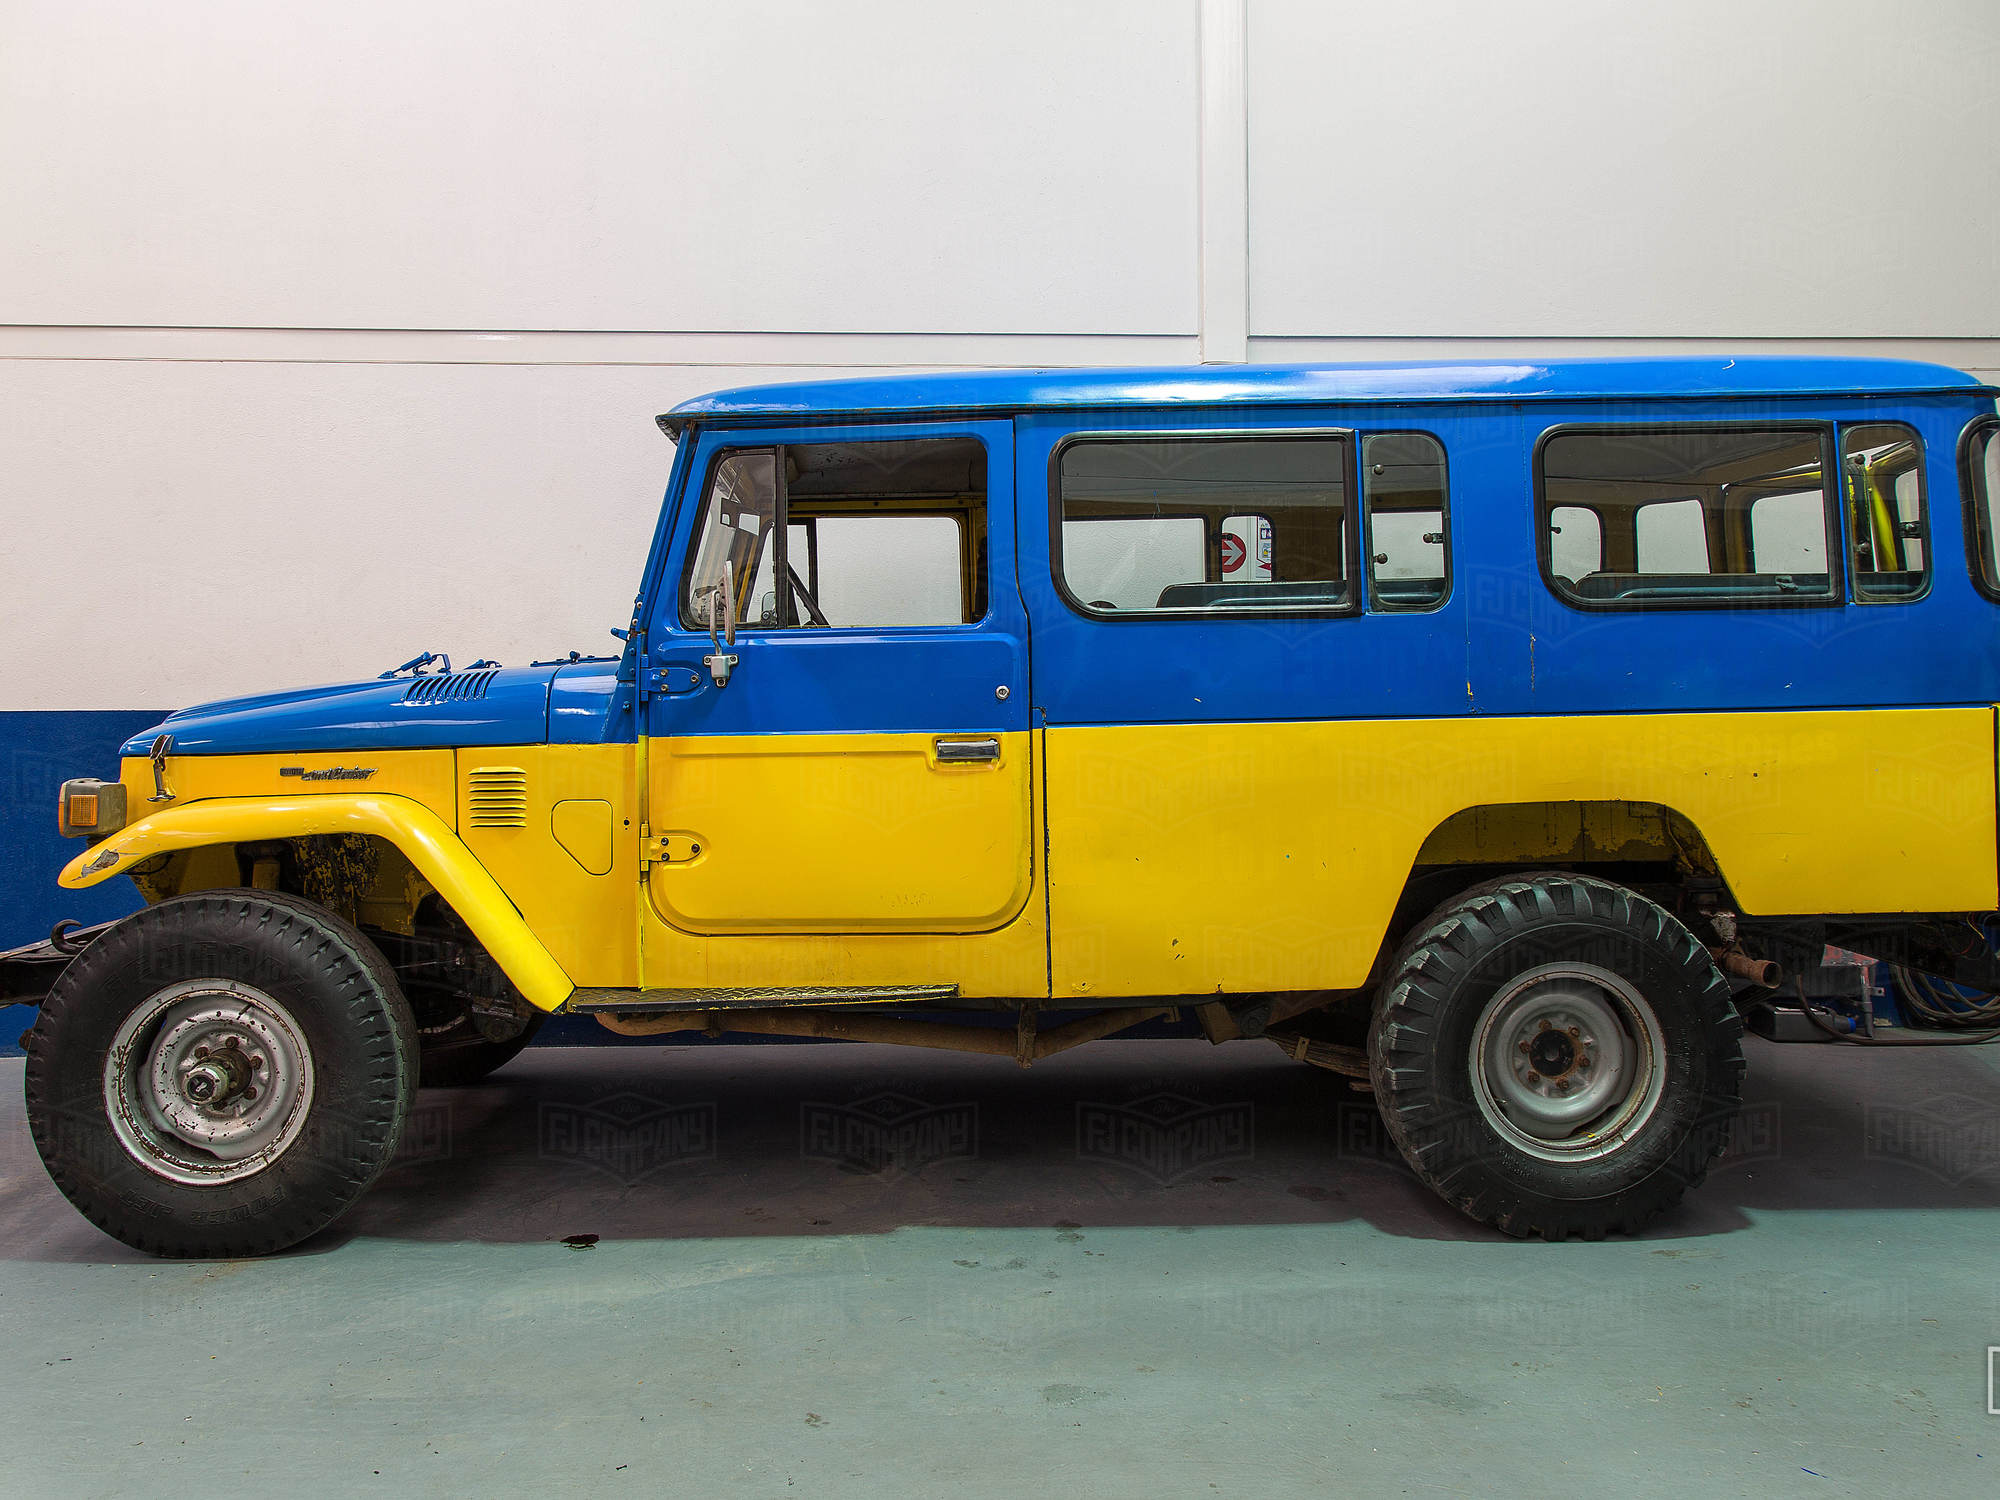 This 1983 Land Cruiser FJ45's restoration process is well underway. Stay posted for updates here.